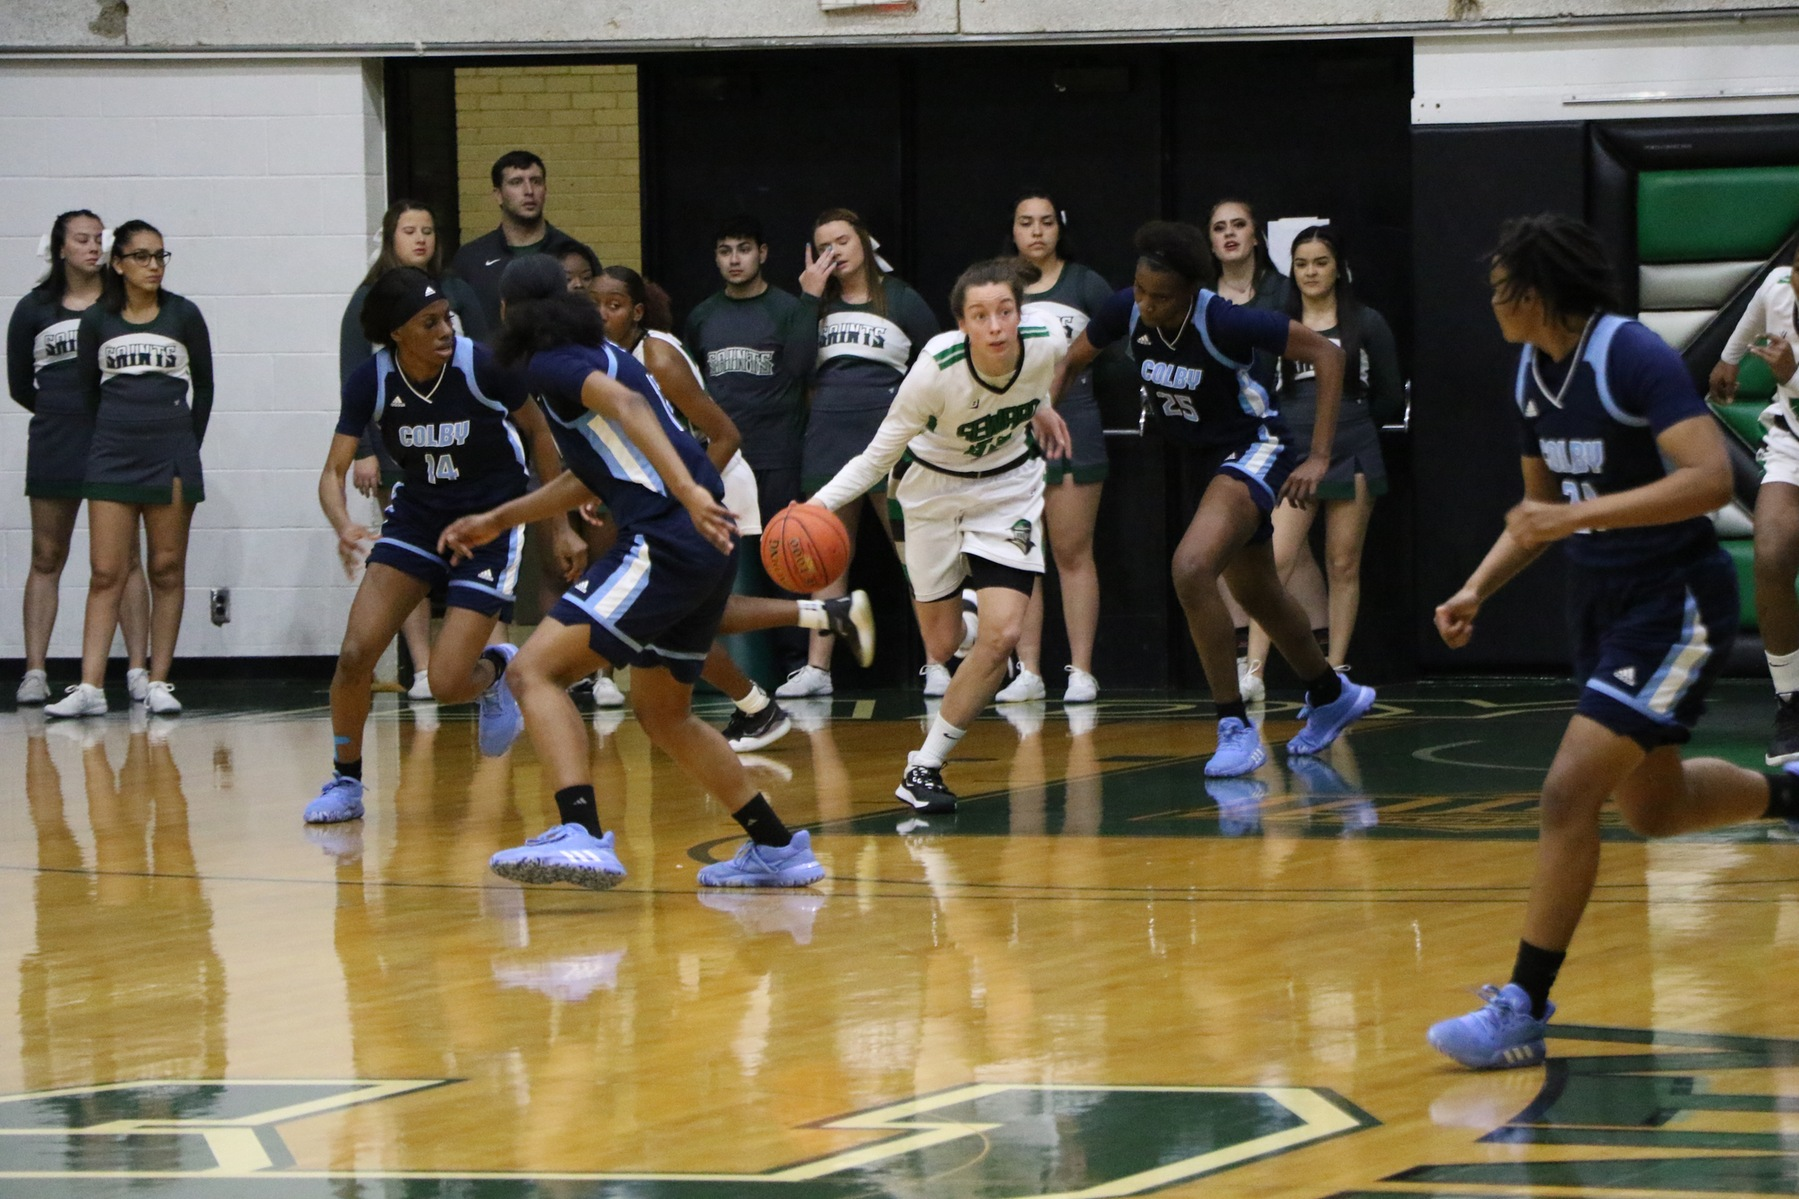 No. 12 Lady Saints claim 60th win in a row in the Greenhouse